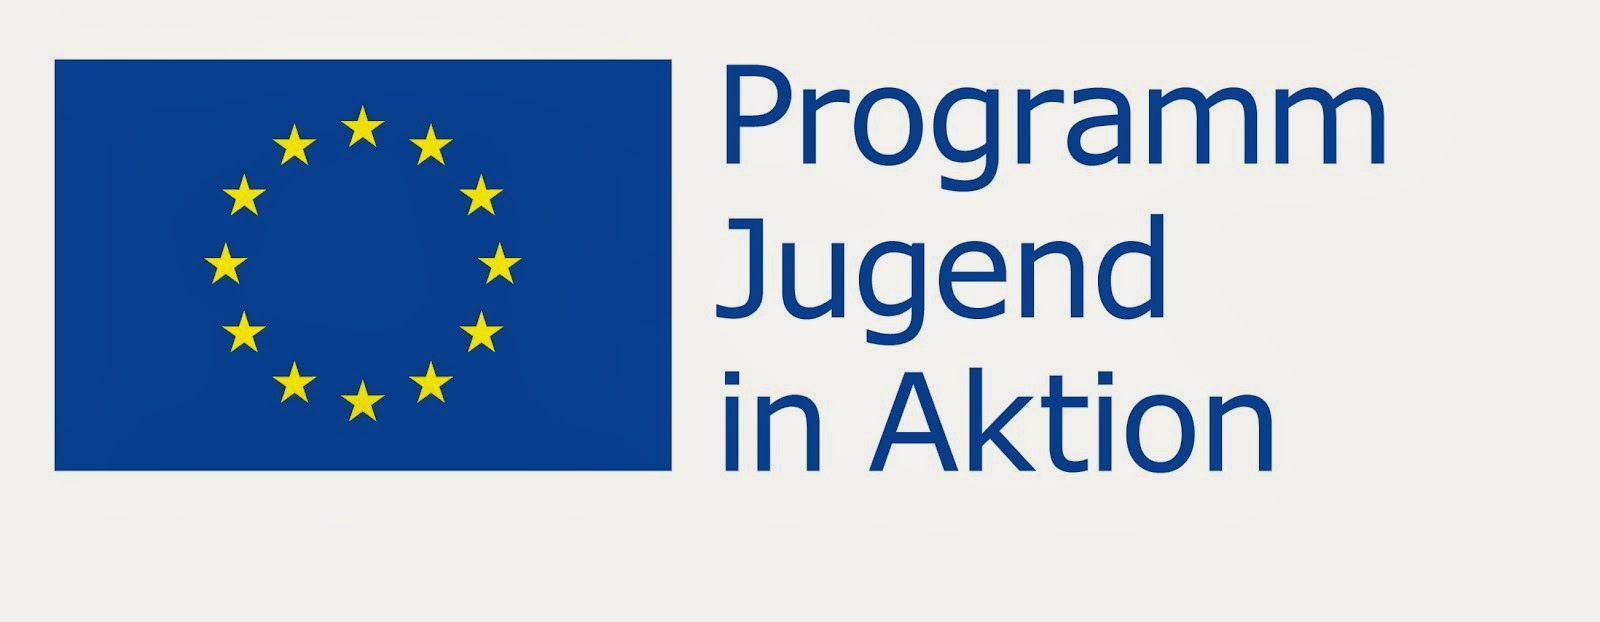 Programm Jugend in Aktion